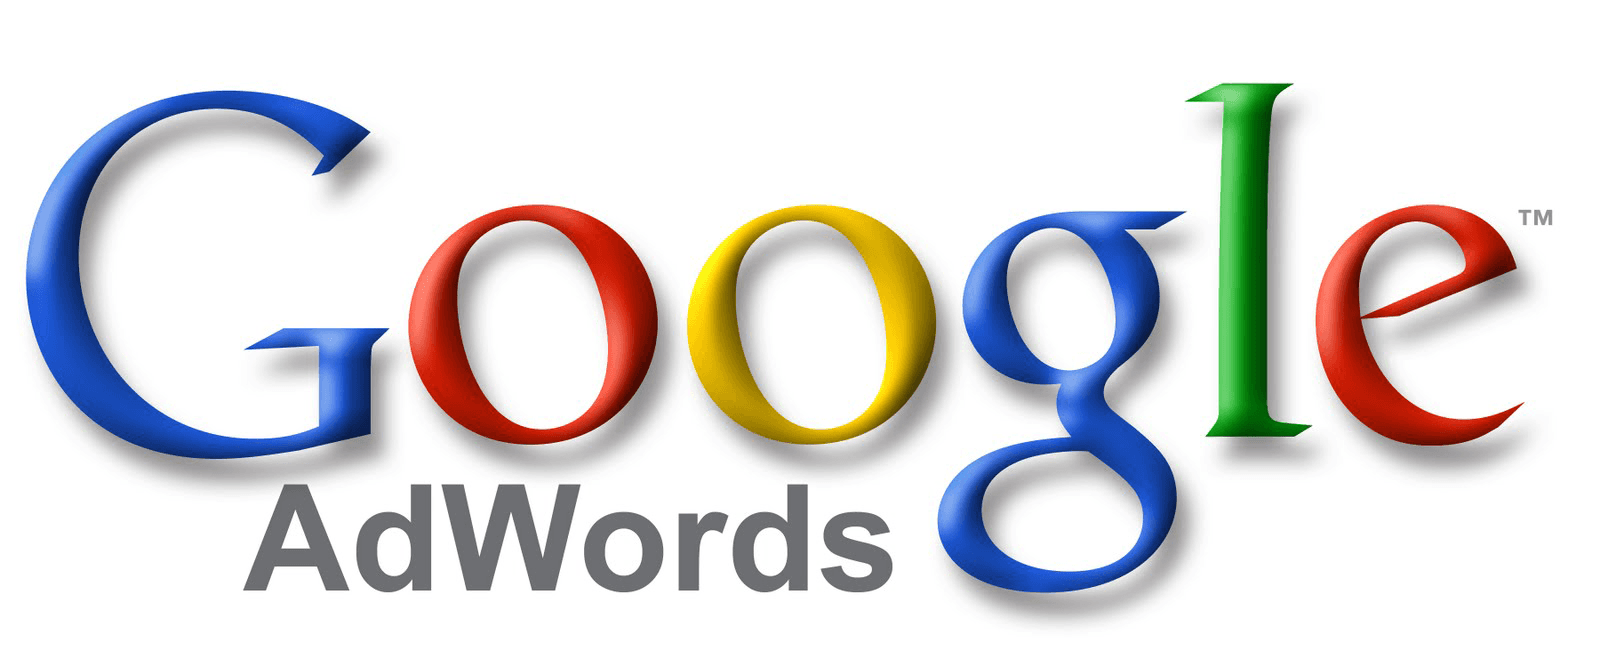 Google Adwords Advertising services by longtail interactive